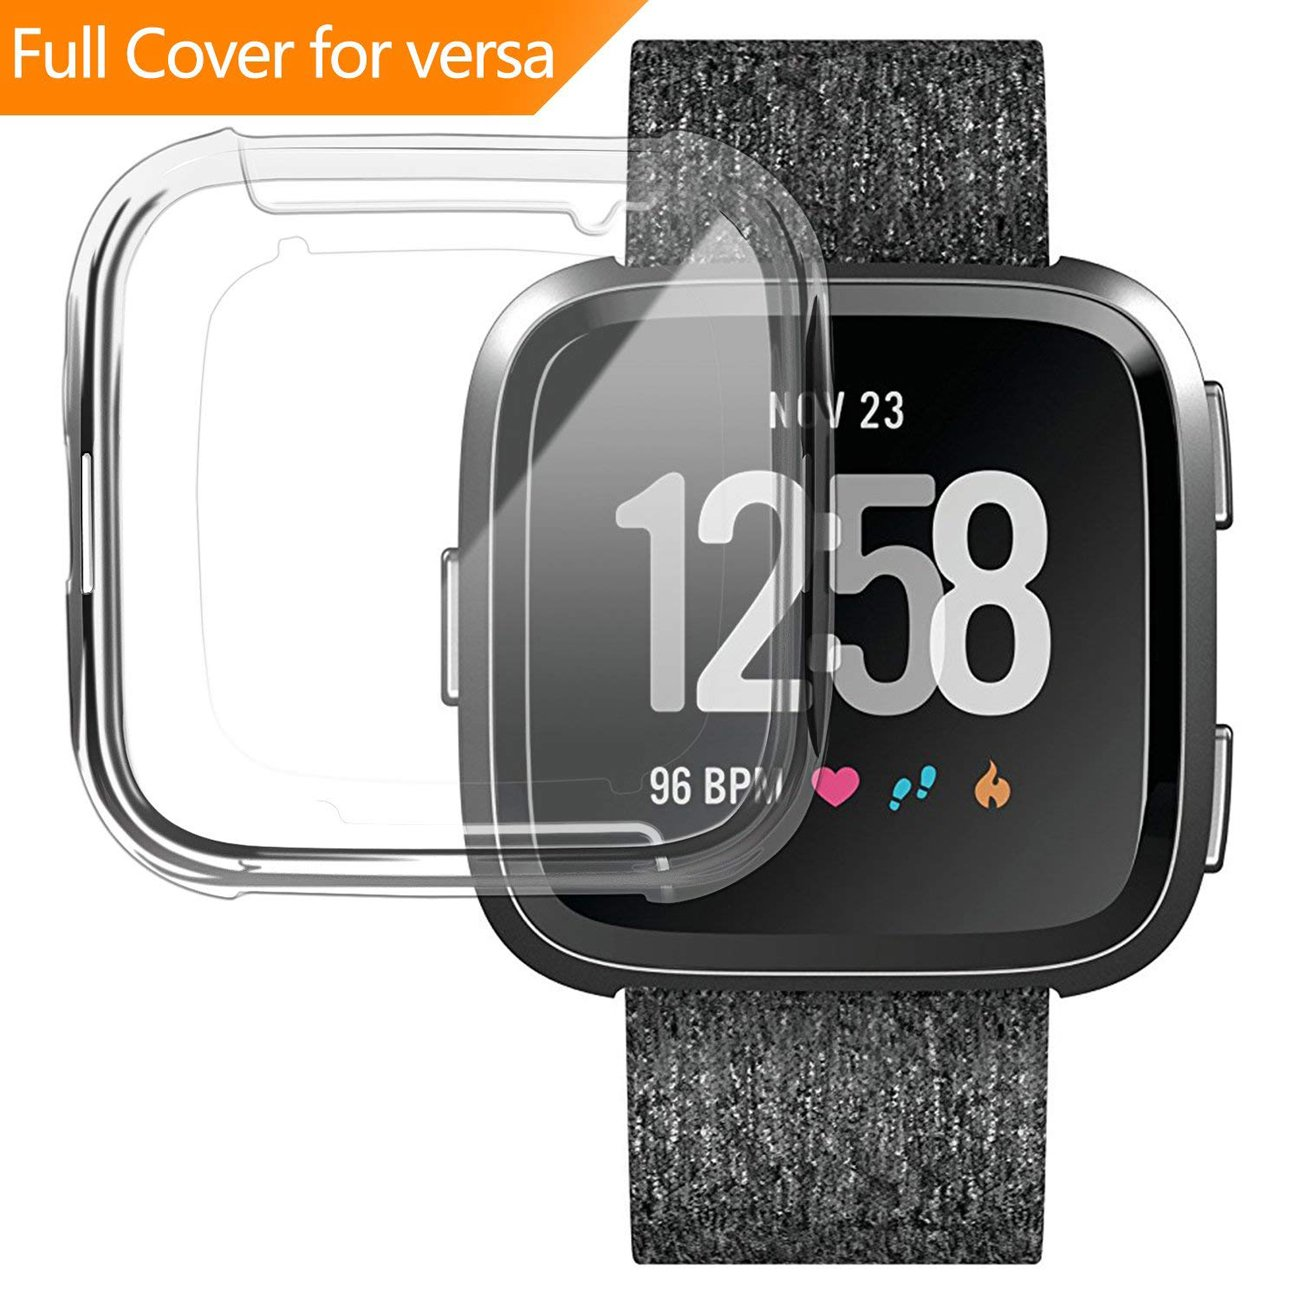 GerTong Soft Silicone TPU Full Cover Case For Fitbit Versa Ultra-thin Soft Plating TPU Protection For Fitbit Versa Protective Shell Frame for Fitbit Versa Smartwatch Clear